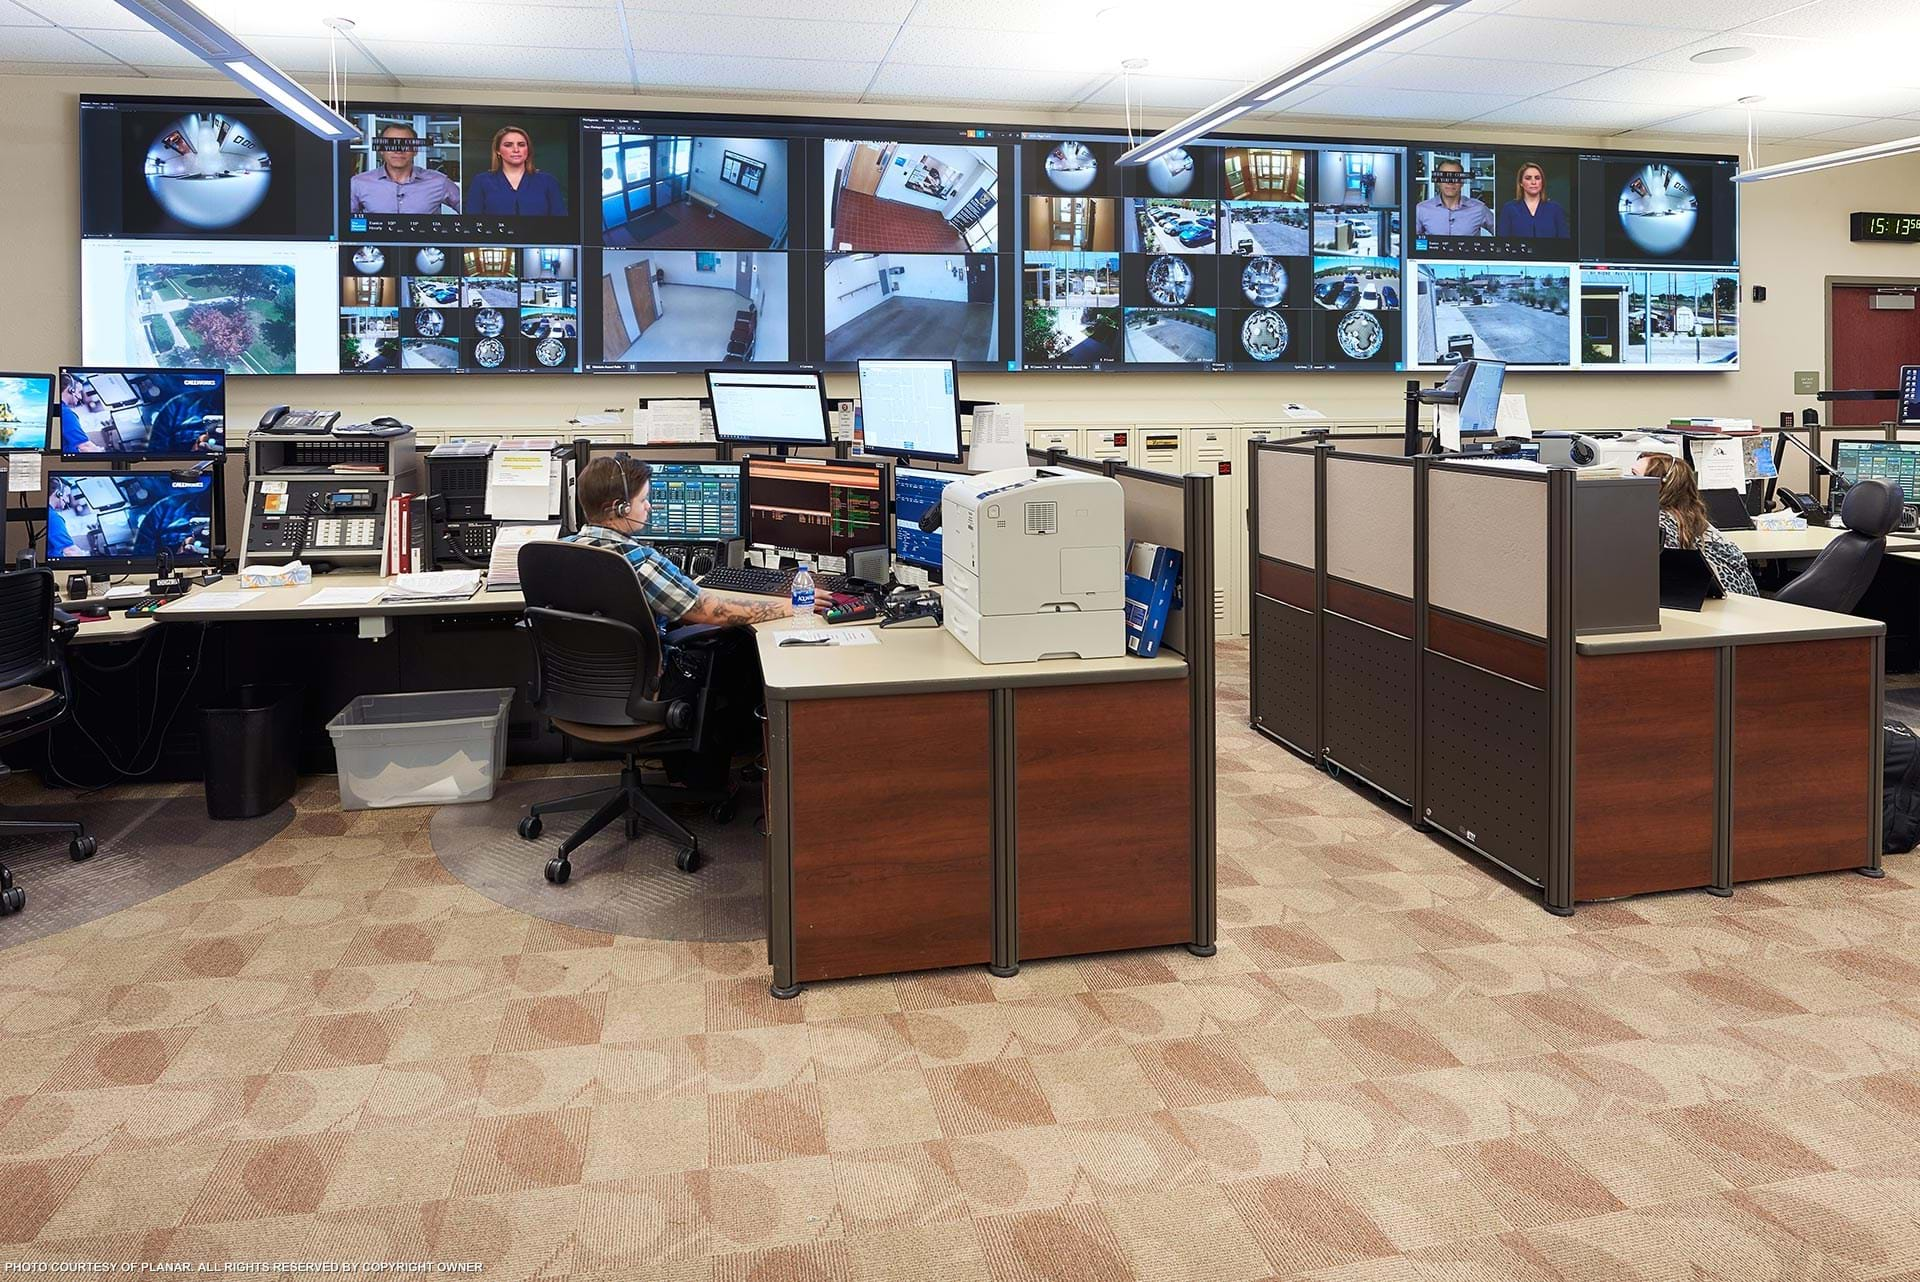 Lea County Communication Authority 911 Call Center Image